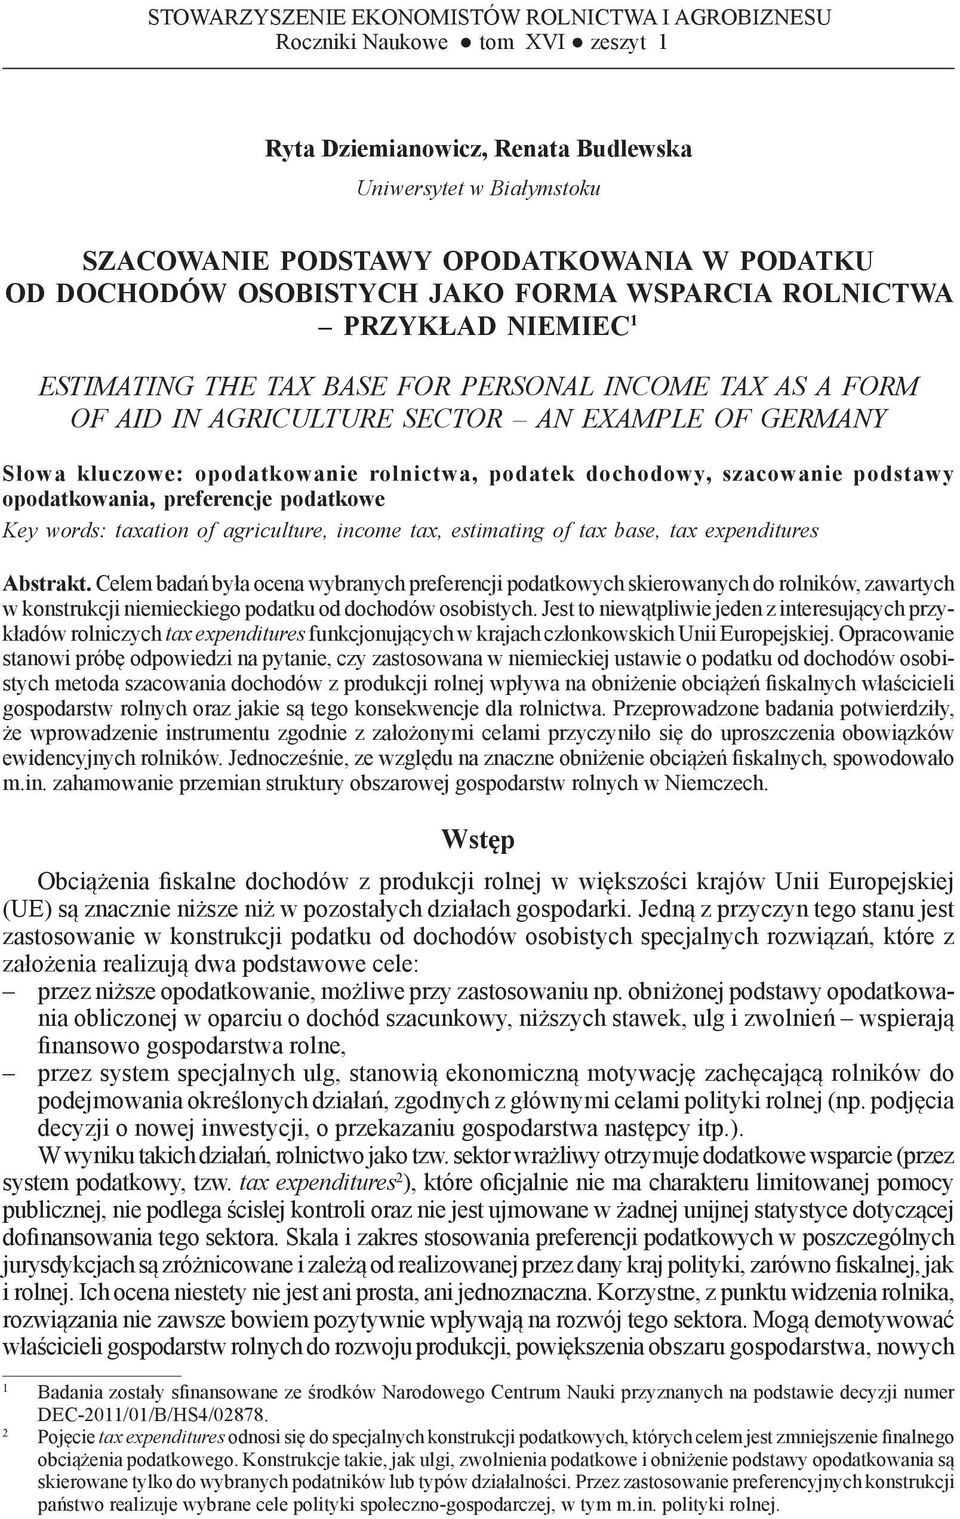 PRZYKŁAD NIEMIEC 1 ESTIMATING THE TAX BASE FOR PERSONAL INCOME TAX AS A FORM OF AID IN AGRICULTURE SECTOR AN EXAMPLE OF GERMANY Słowa kluczowe: opodatkowanie rolnictwa, podatek dochodowy, szacowanie